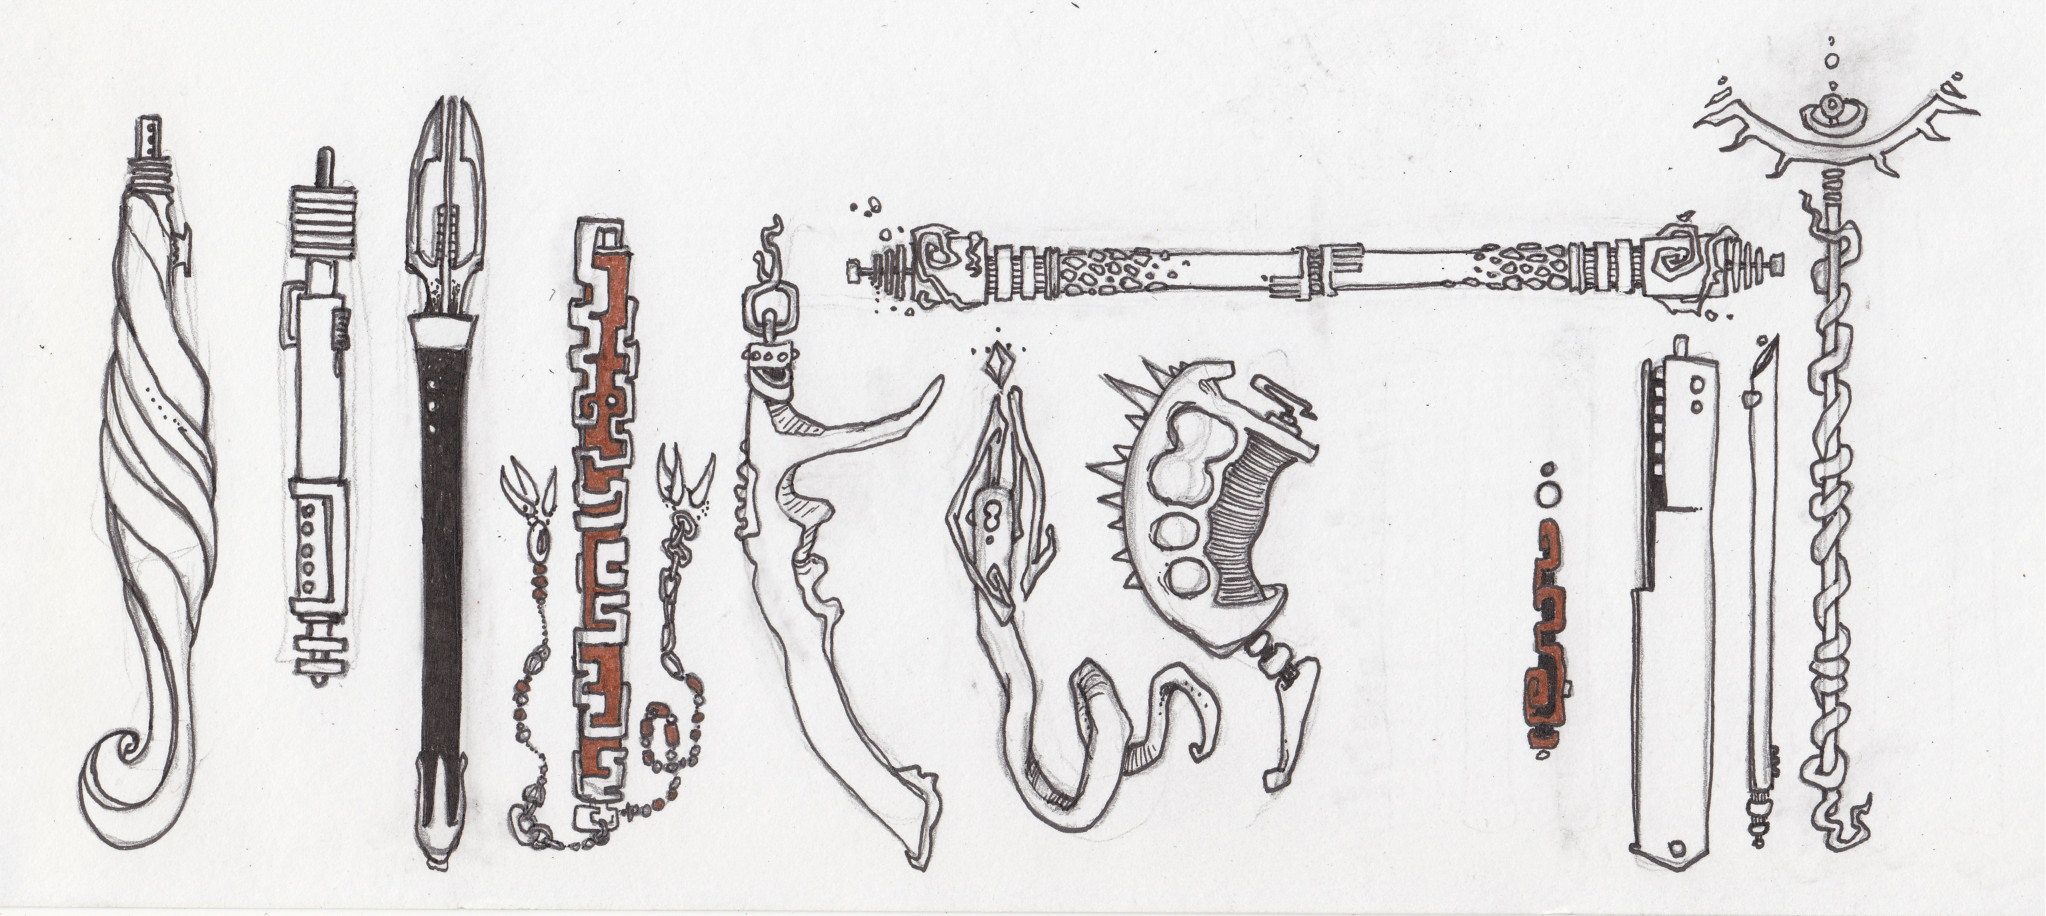 Drawn star wars lightsaber Star the device do are